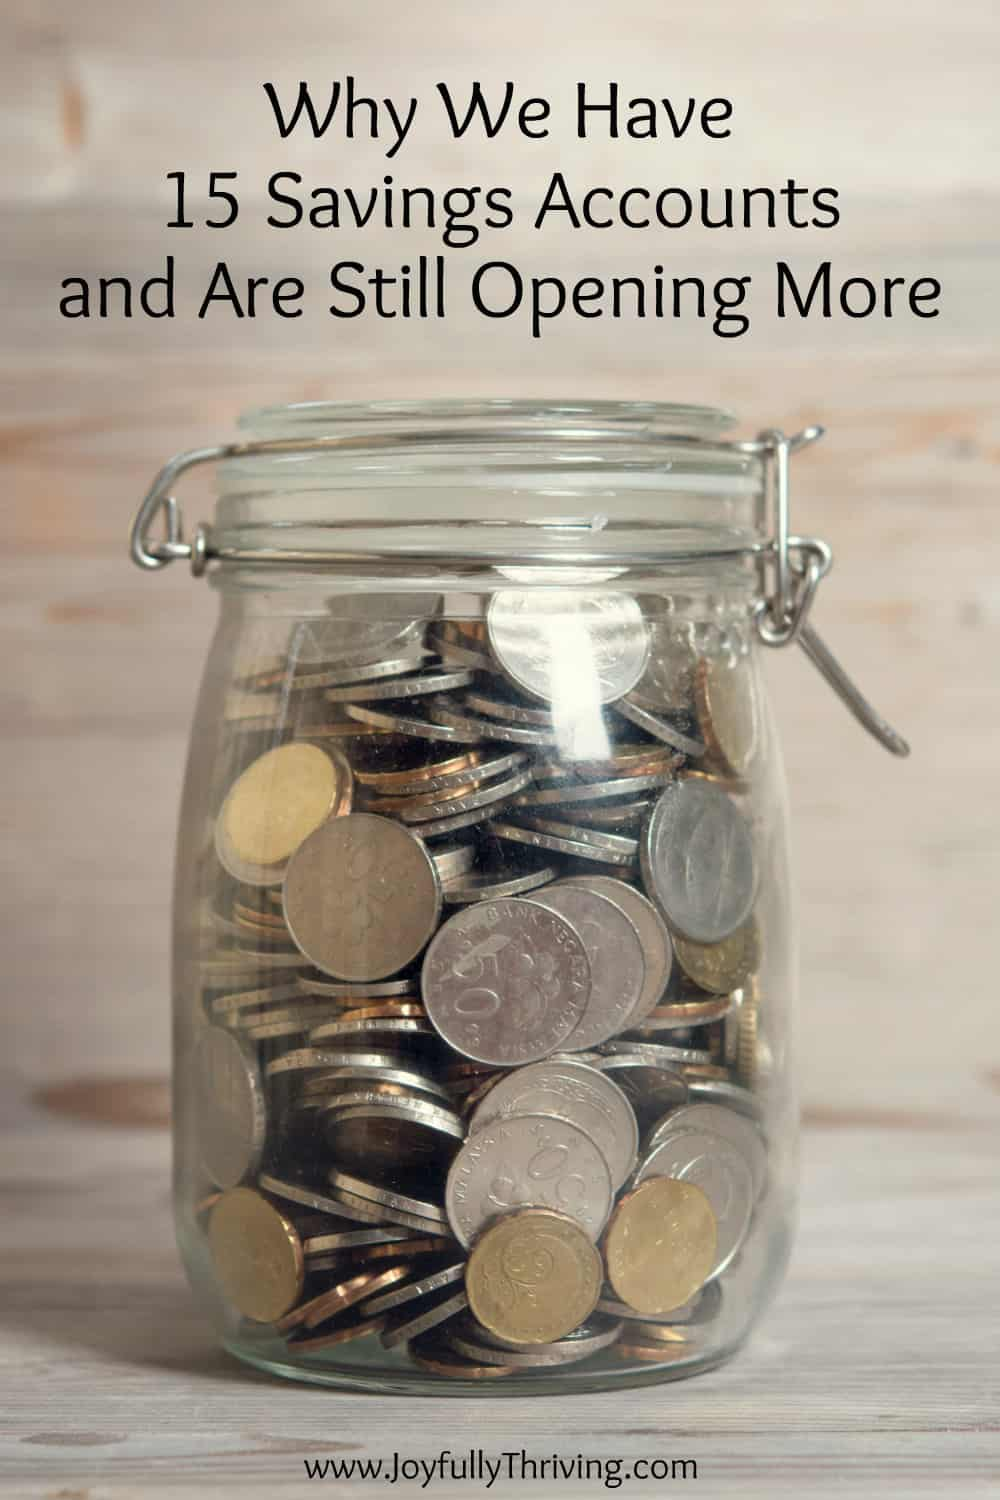 Why We Have 15 Savings Accounts and are Still Opening More. A great idea!